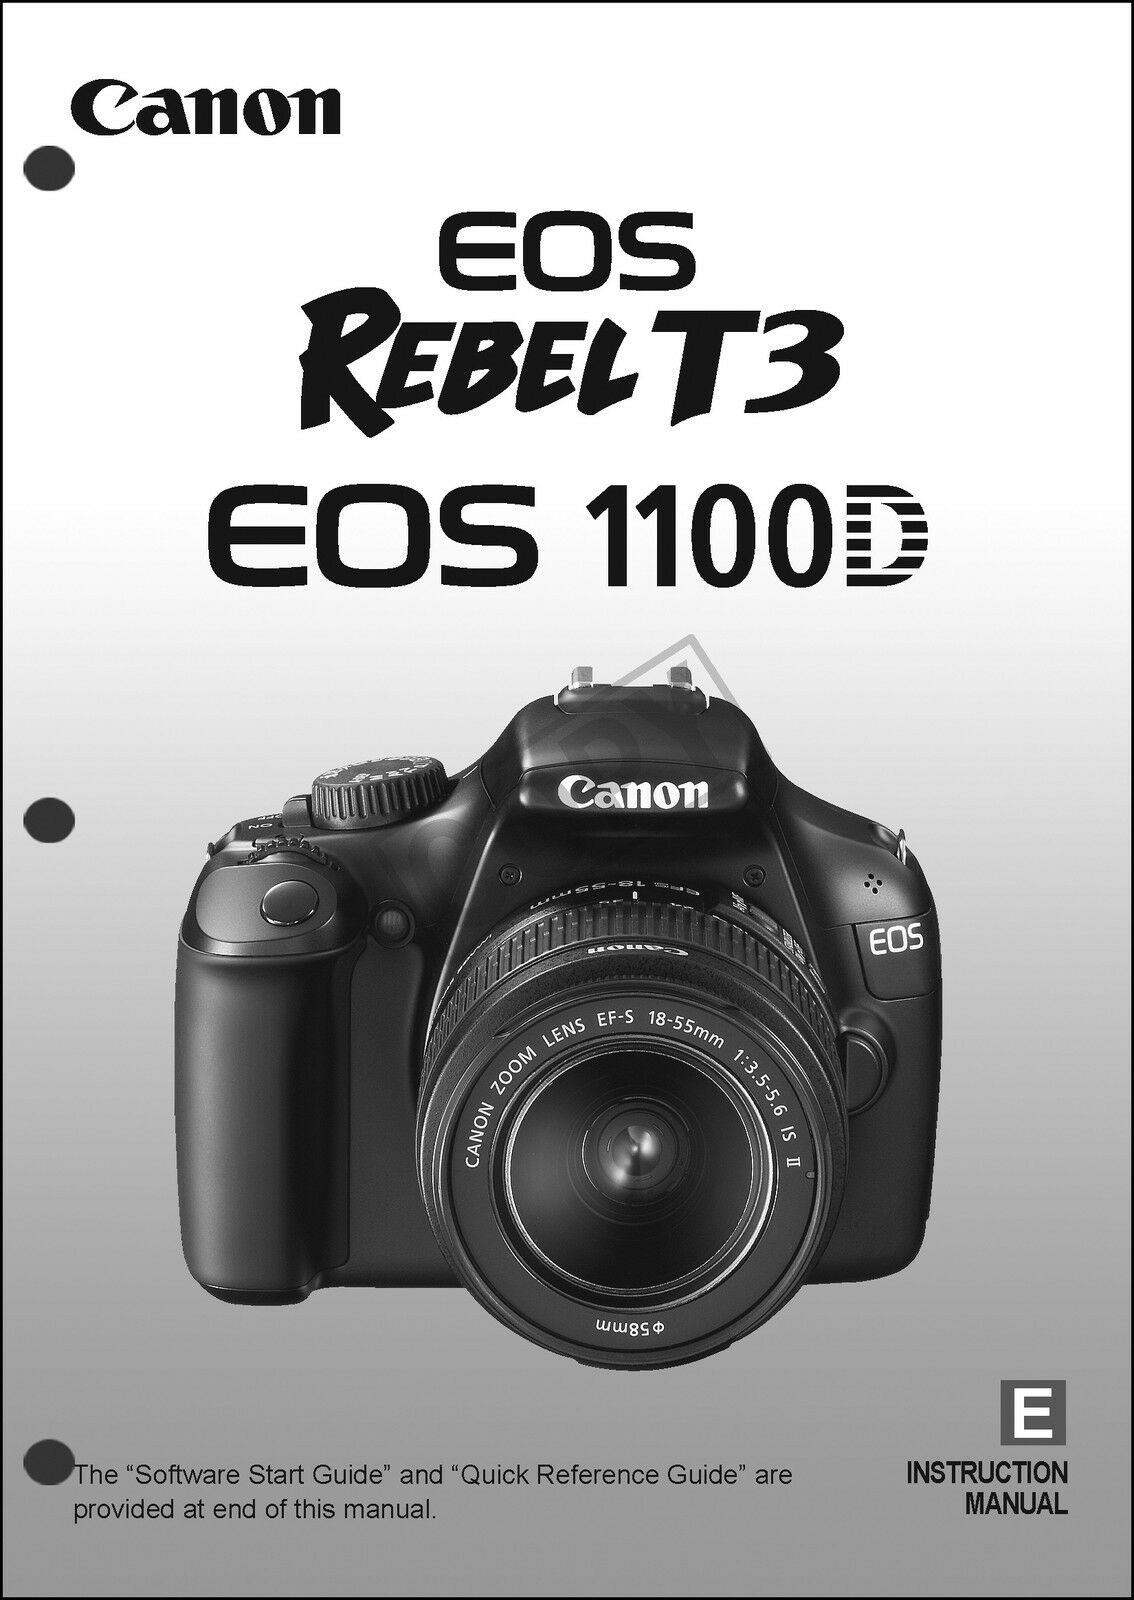 Canon REBEL T3 EOS 1100D Digital Camera User Instruction Guide Manual 1 of  1 See More